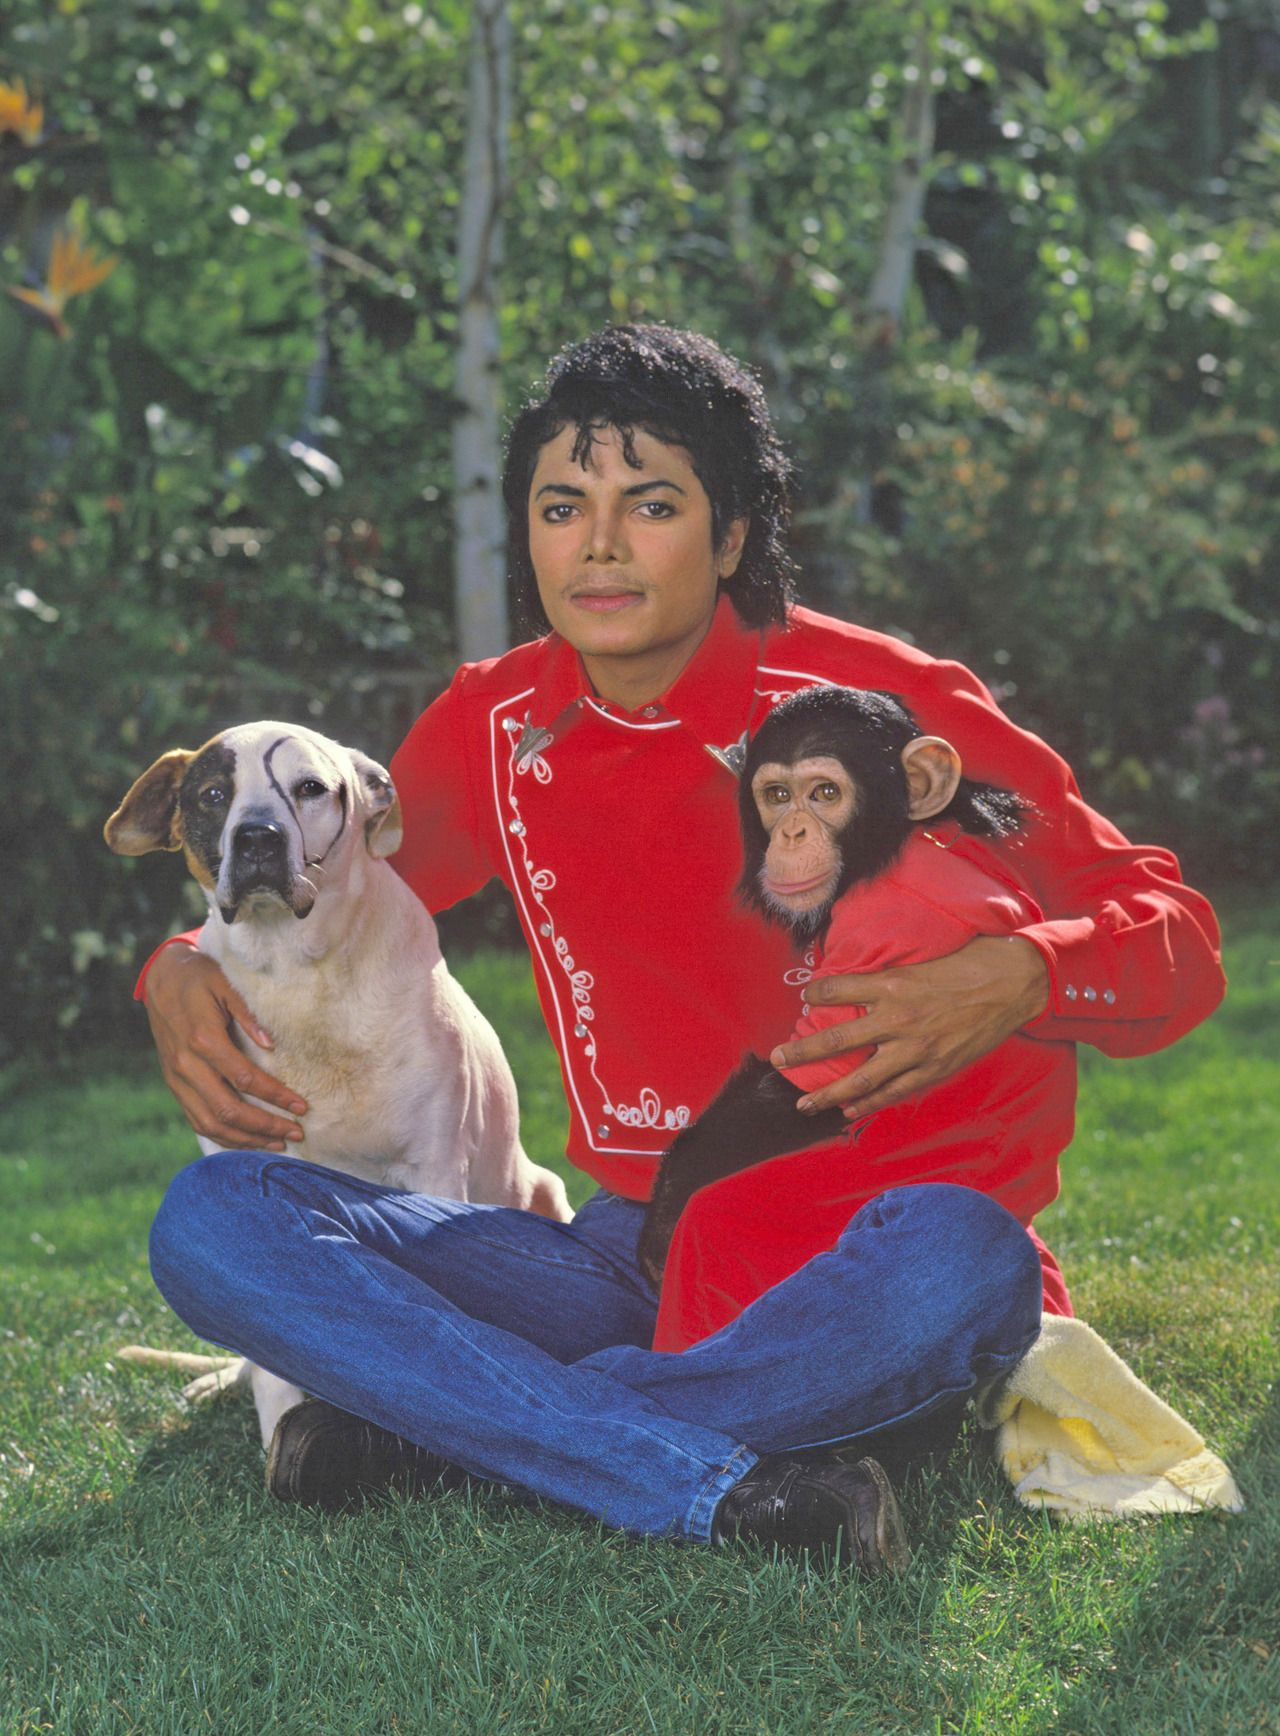 More About Michael Jackson At